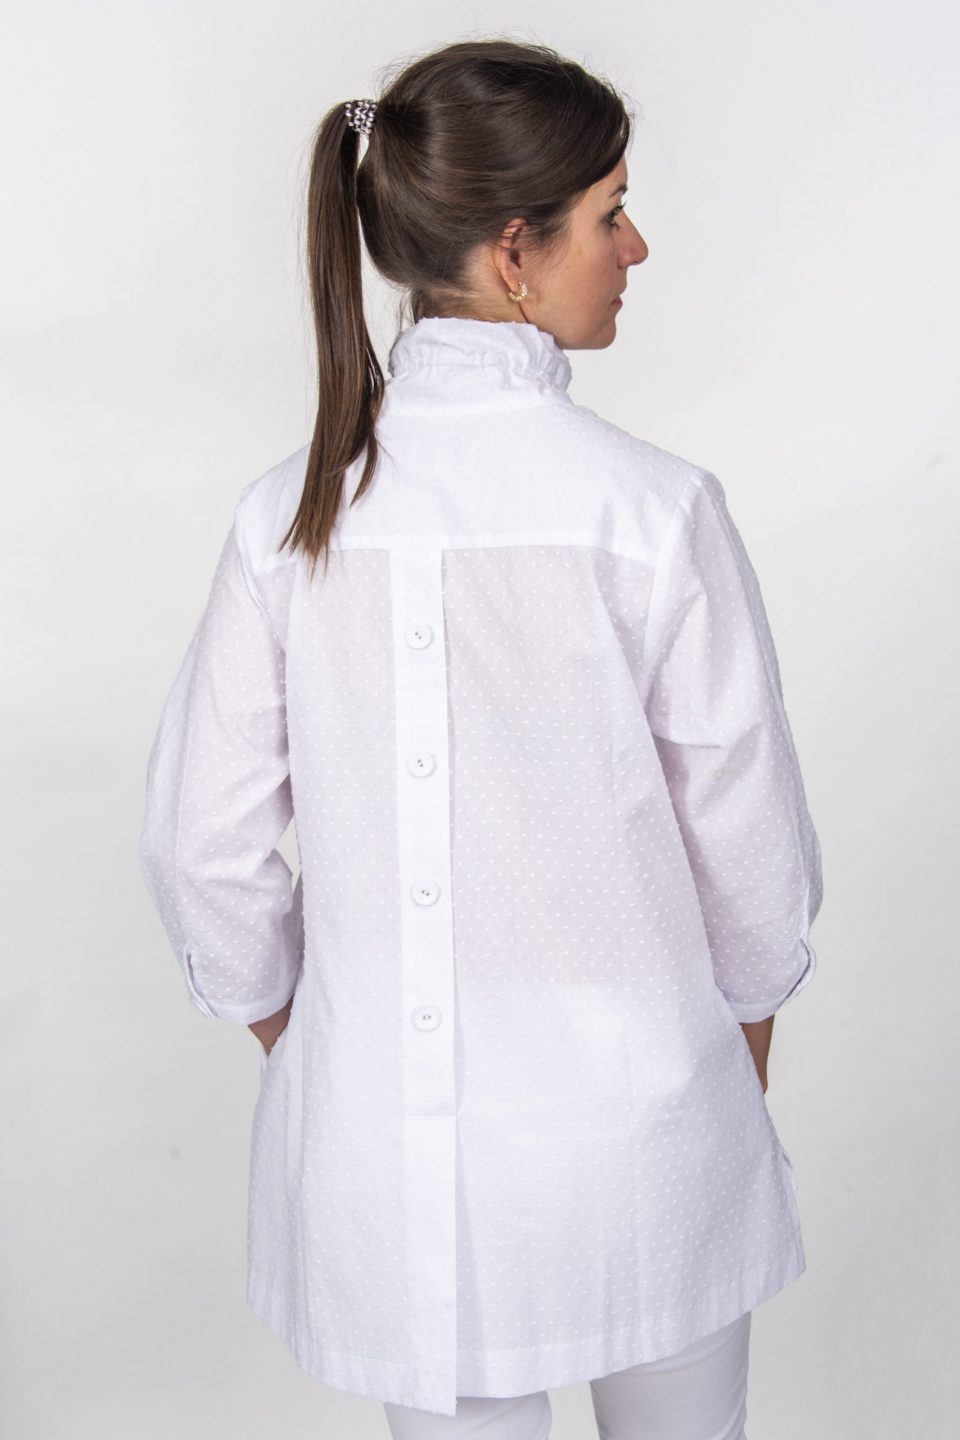 Beach House Blouse White Dotted Swiss Back- Diane Bailey Designs